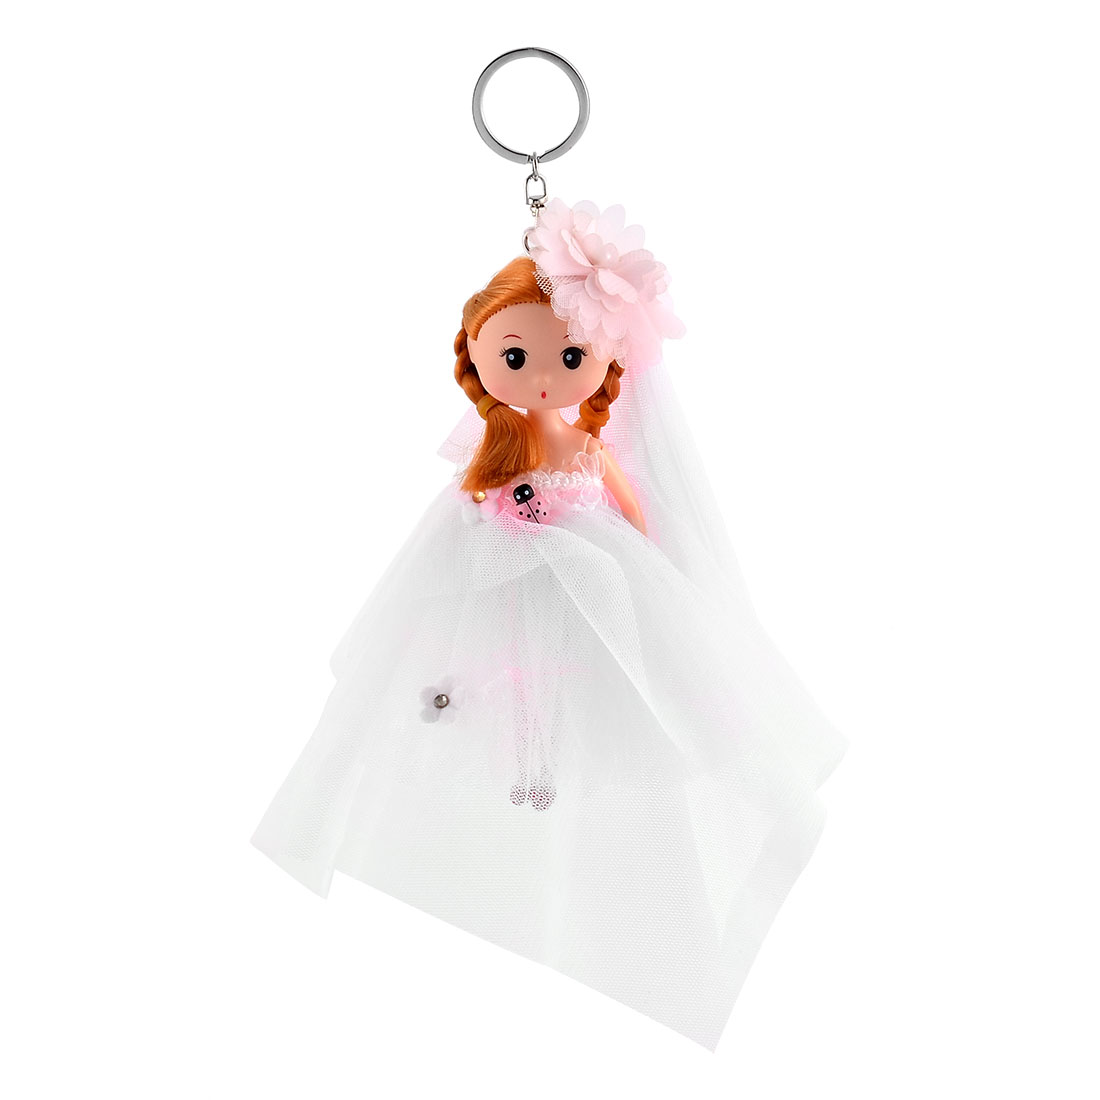 Girl Bag Veil Dress Toy Decoration Pendant Strap Doll Keychain Key Ring Pink